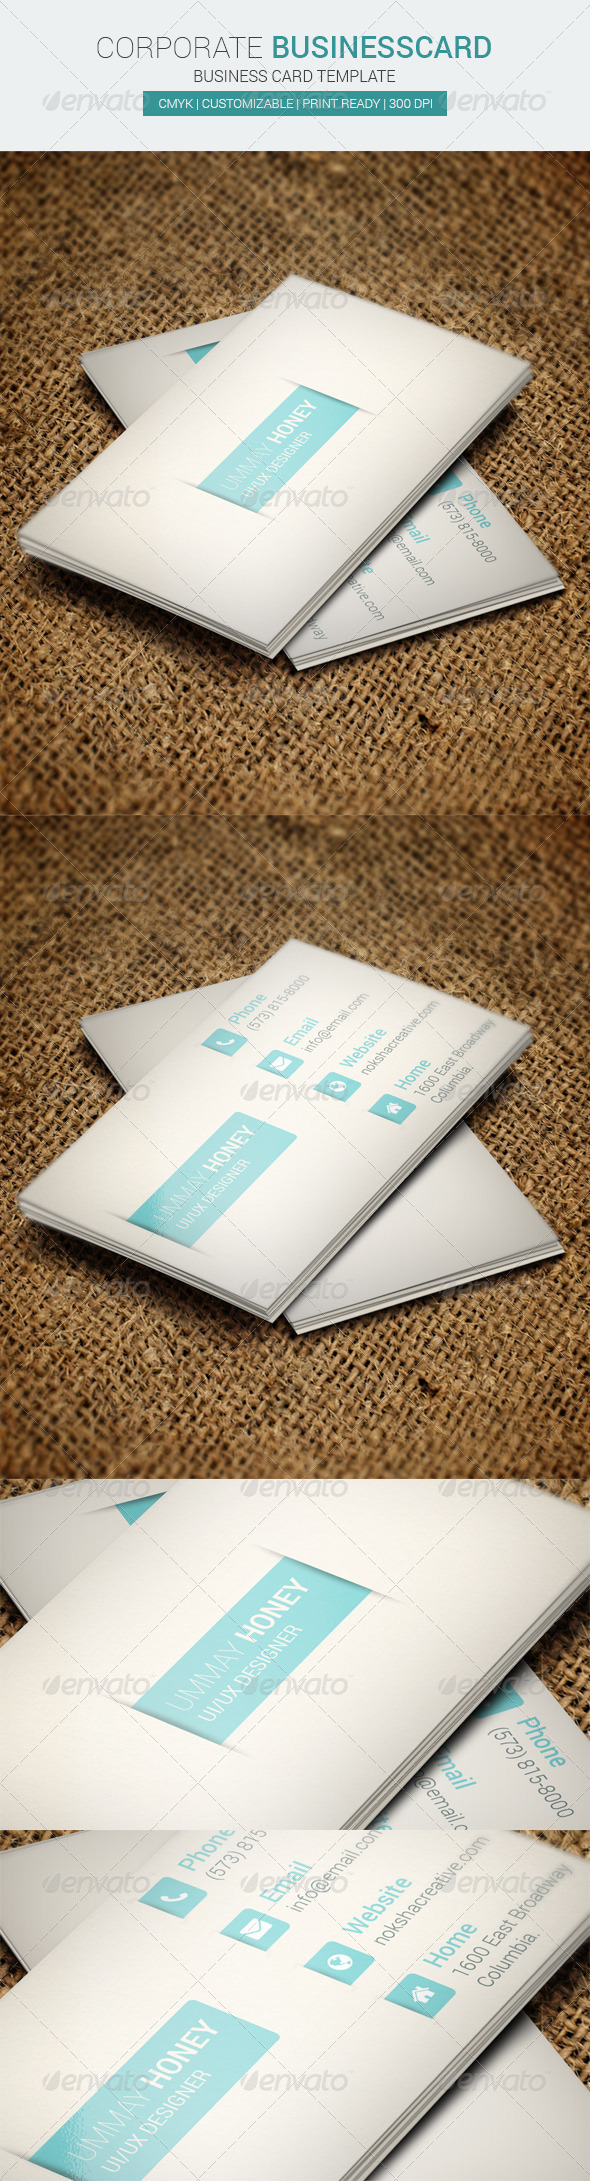 GraphicRiver Corporate Business Card 6789058